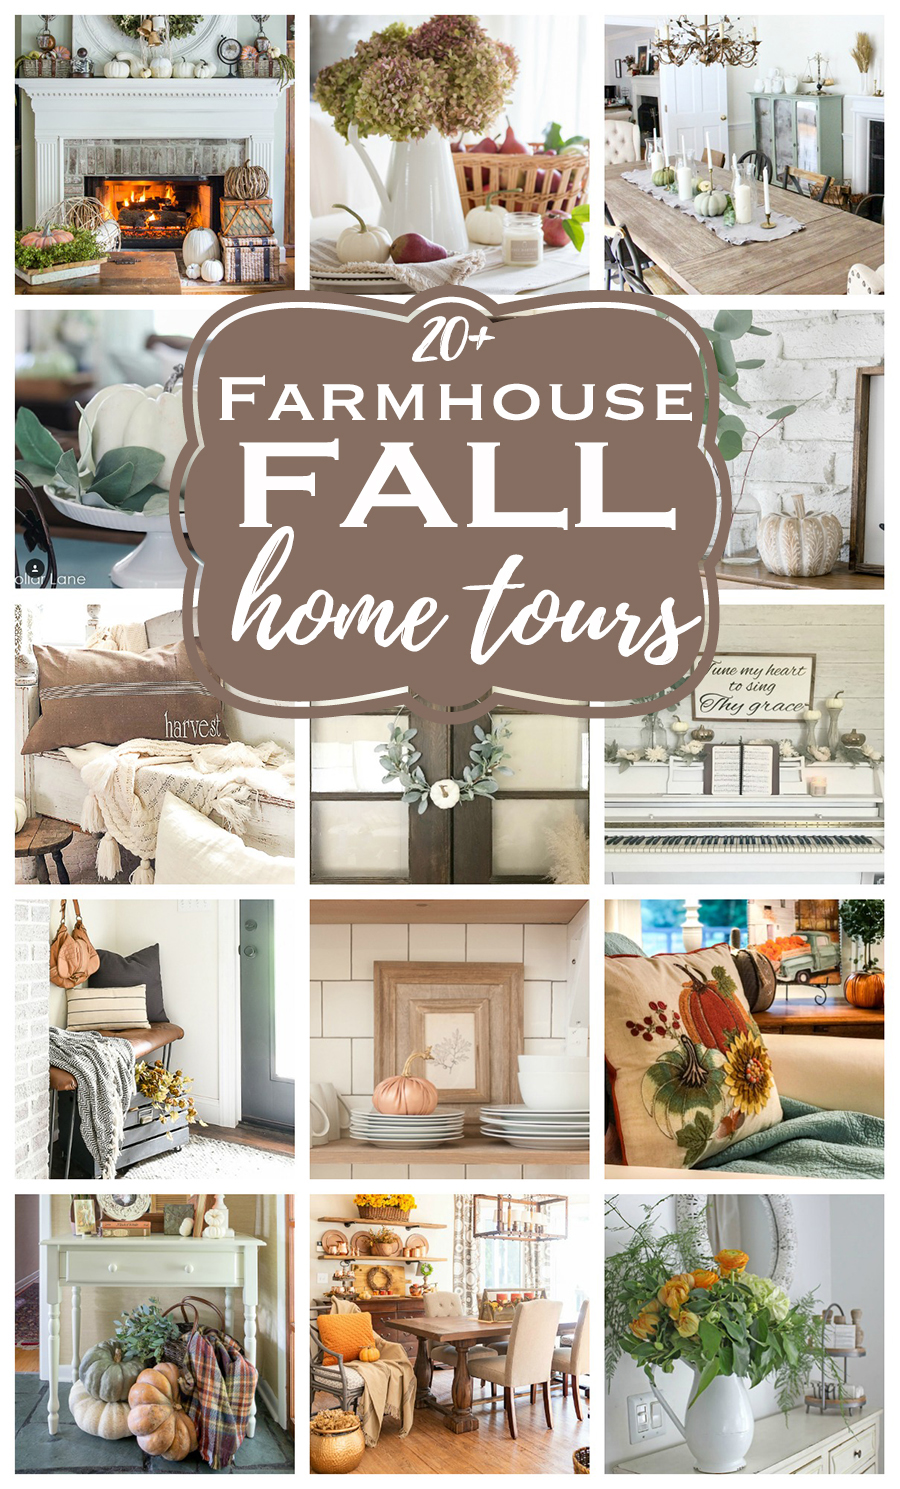 See over 20 homes of bloggers decked out in fall decor! Decorating for fall inspiration with the best budget ideas in many different styles.